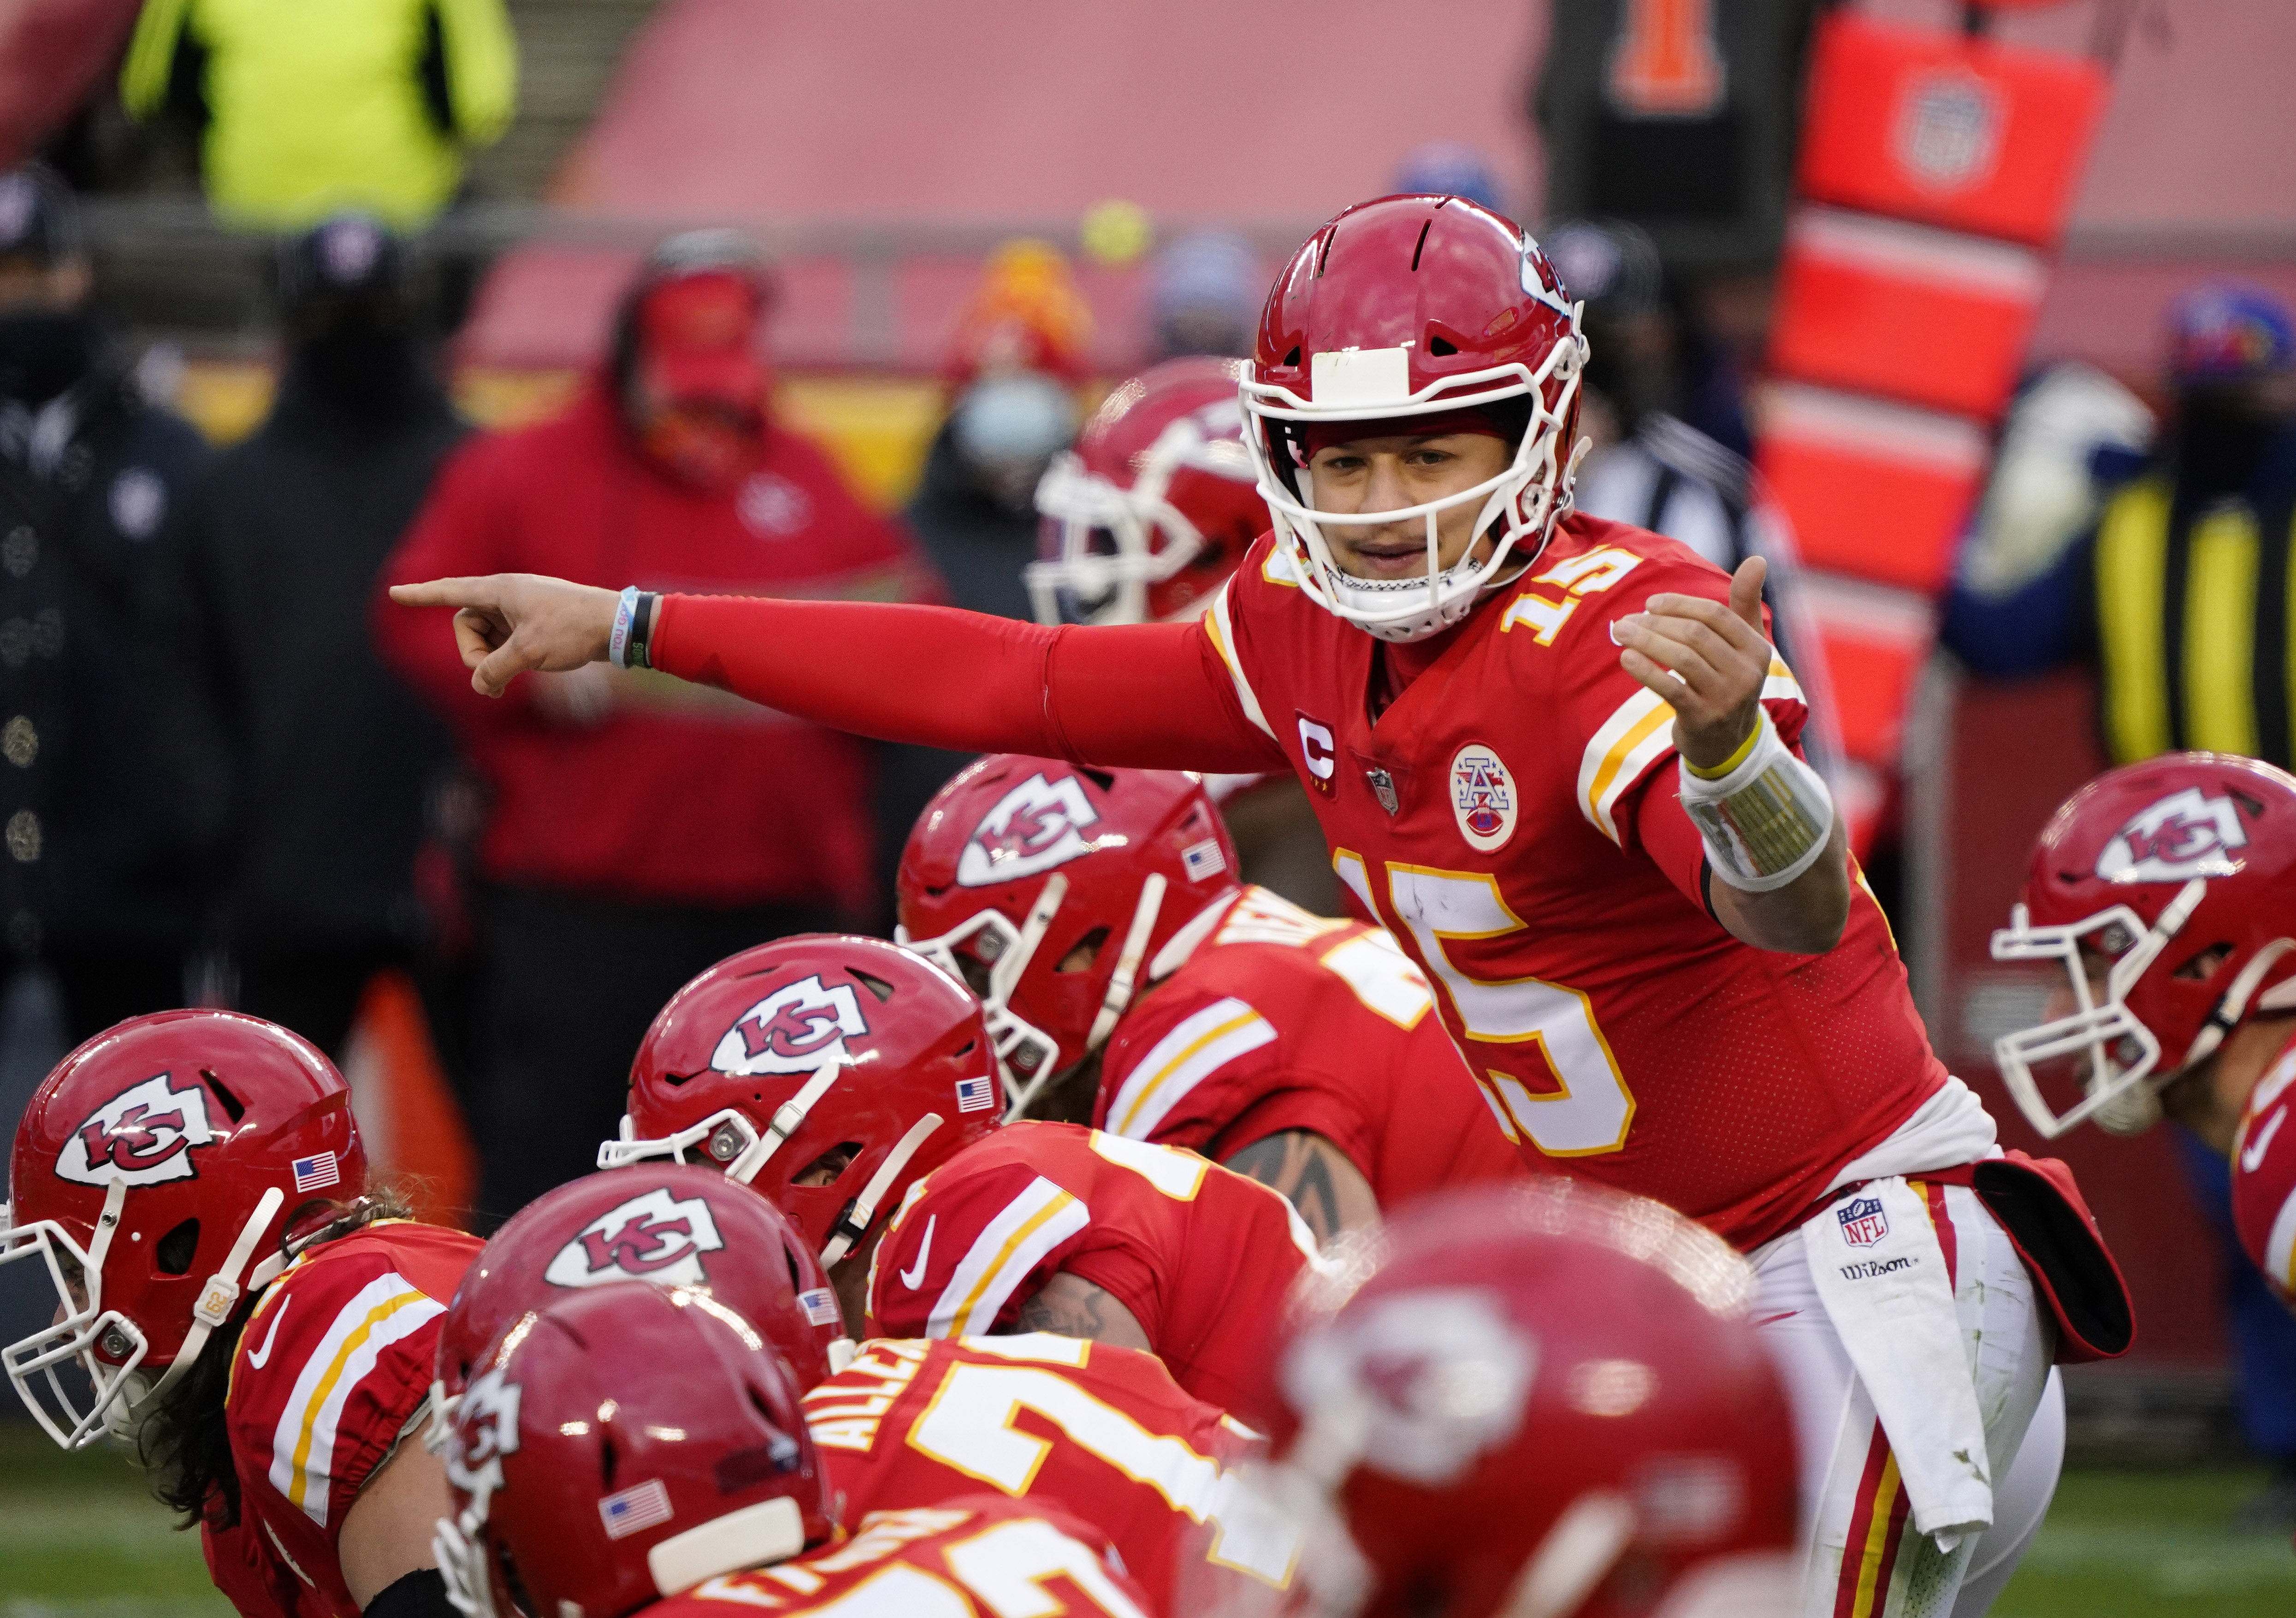 Kansas City Chiefs quarterback Patrick Mahomes before the snap against the Cleveland Browns during the second half in the AFC Divisional Round playoff game at Arrowhead Stadium.